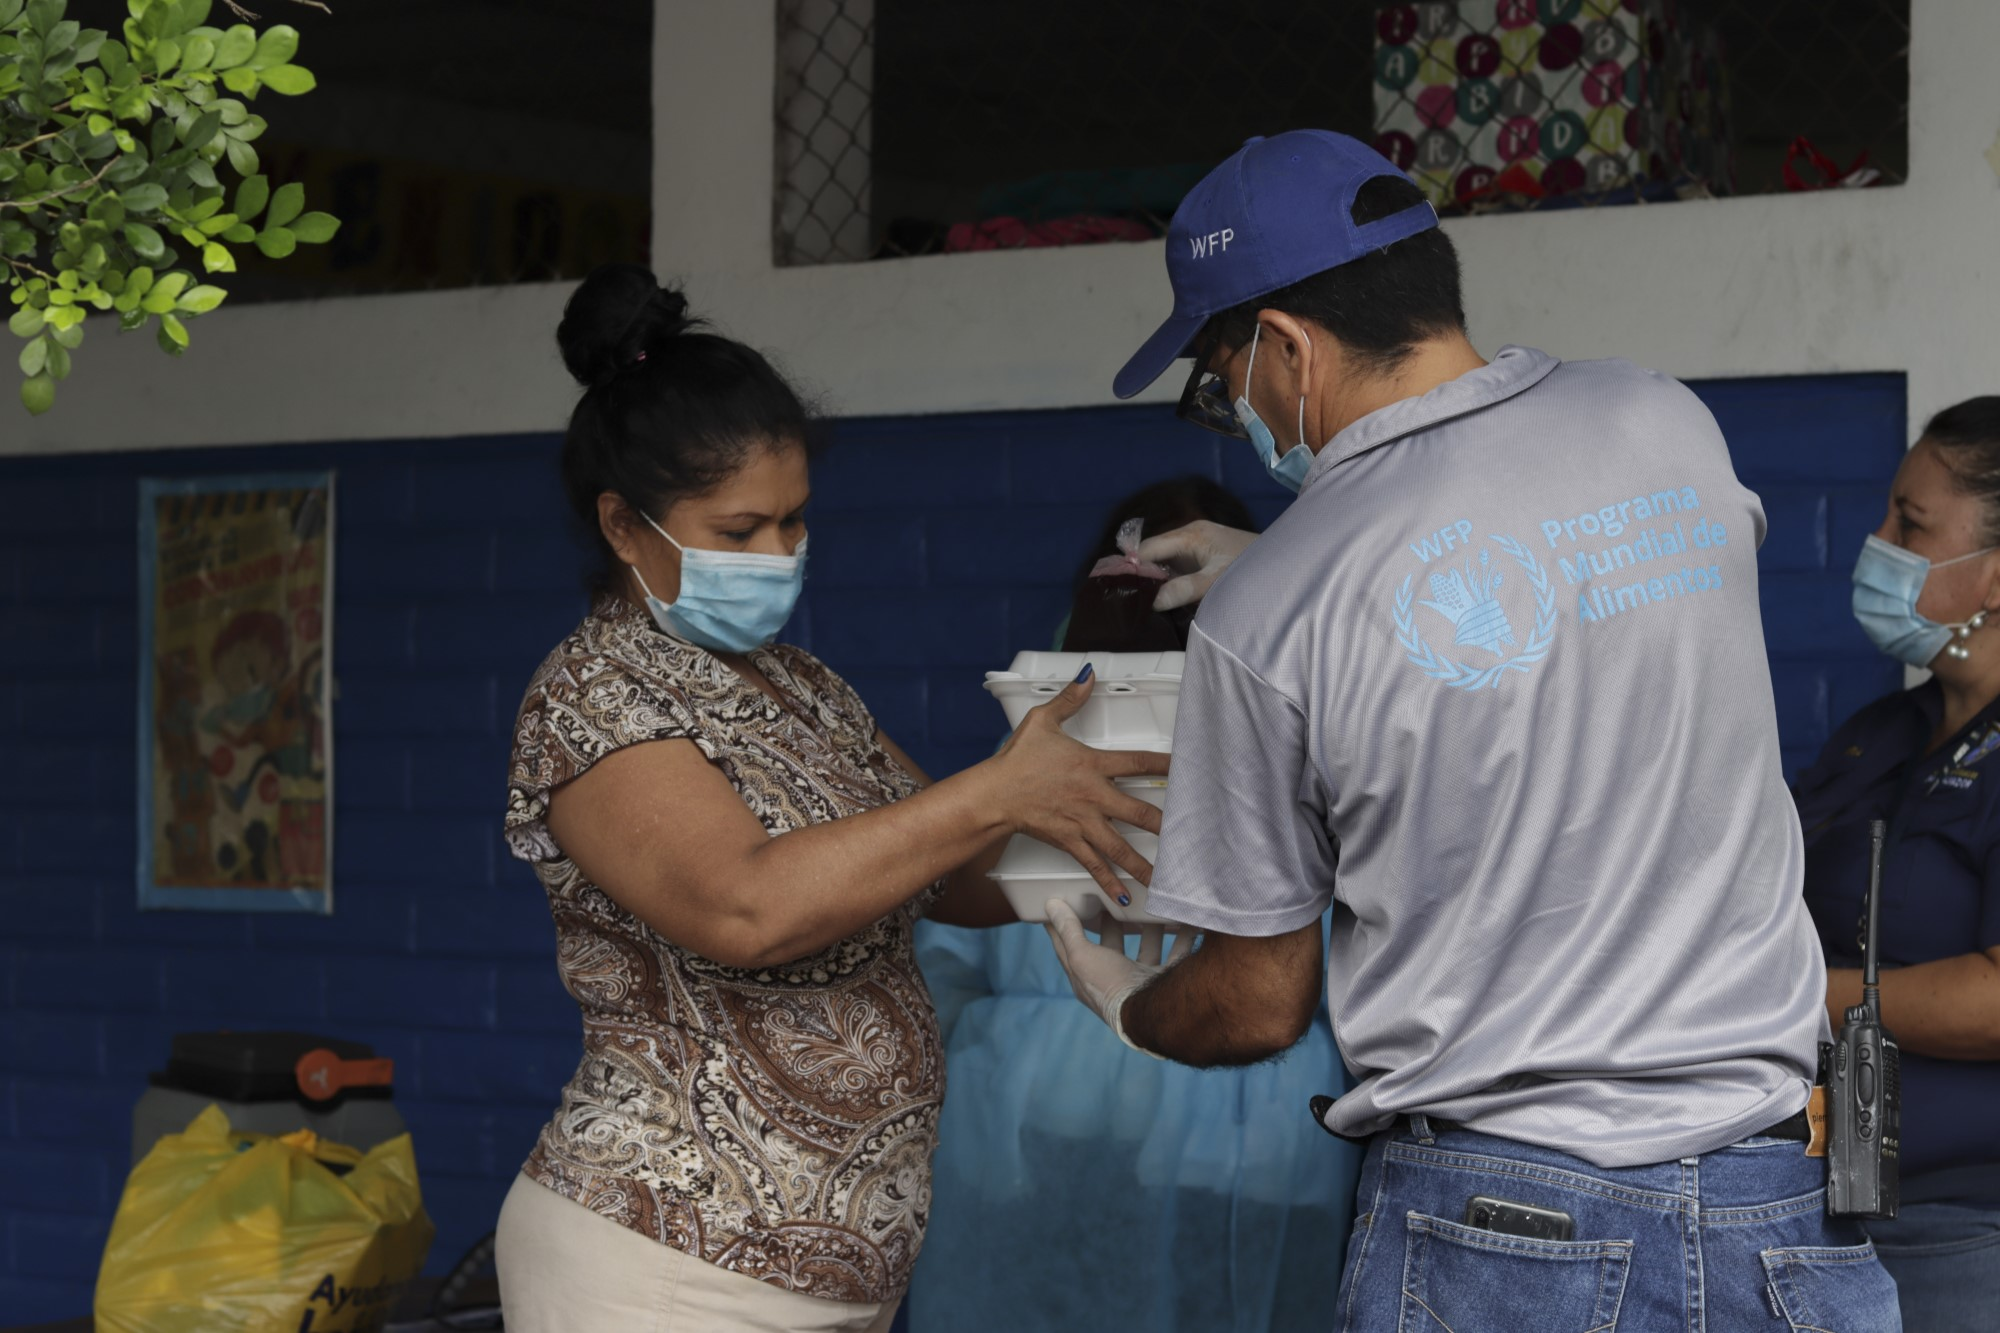 Food Distribution in El Salvador - WFP/David Fernandez